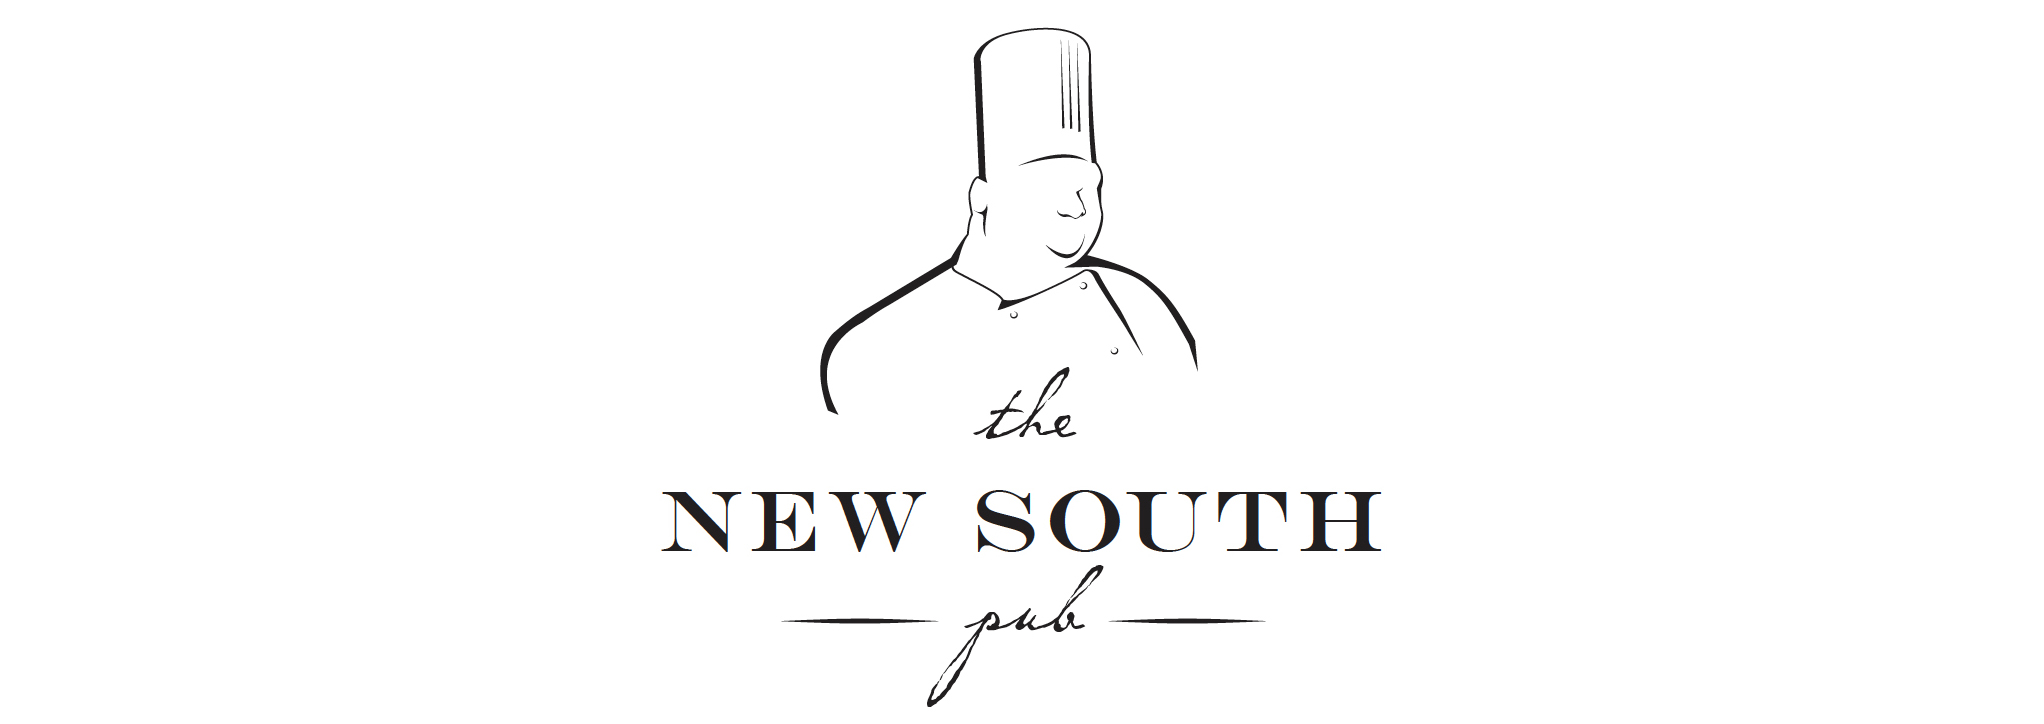 The New South Pub logo